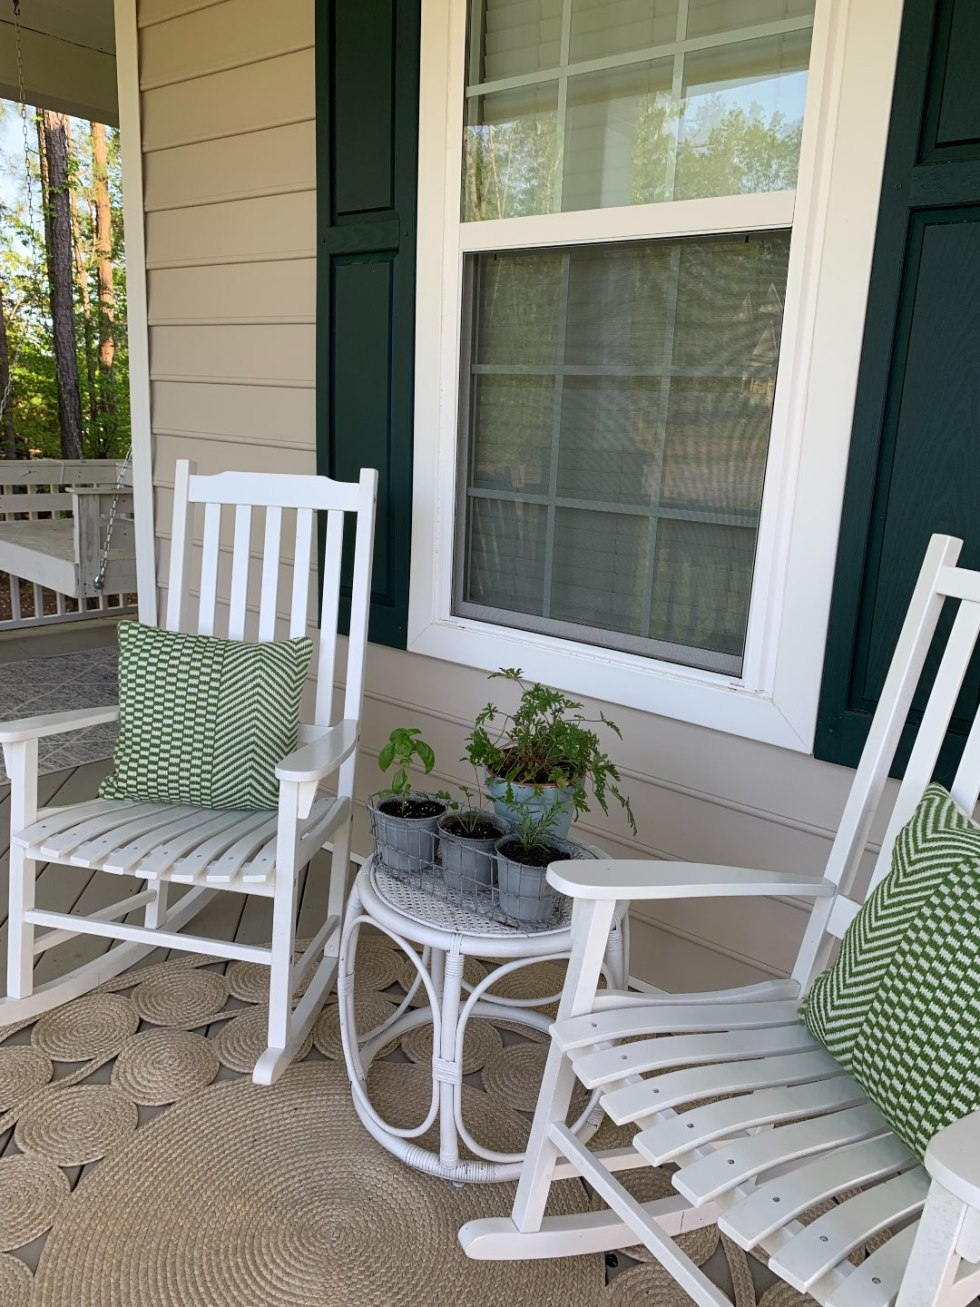 How to Update Your Front Porch Decor for the Season - I'm Fixin' To - @mbg0112  | Front Porch Decor for Spring featured by top US lifestyle blog, I'm Fixin' To